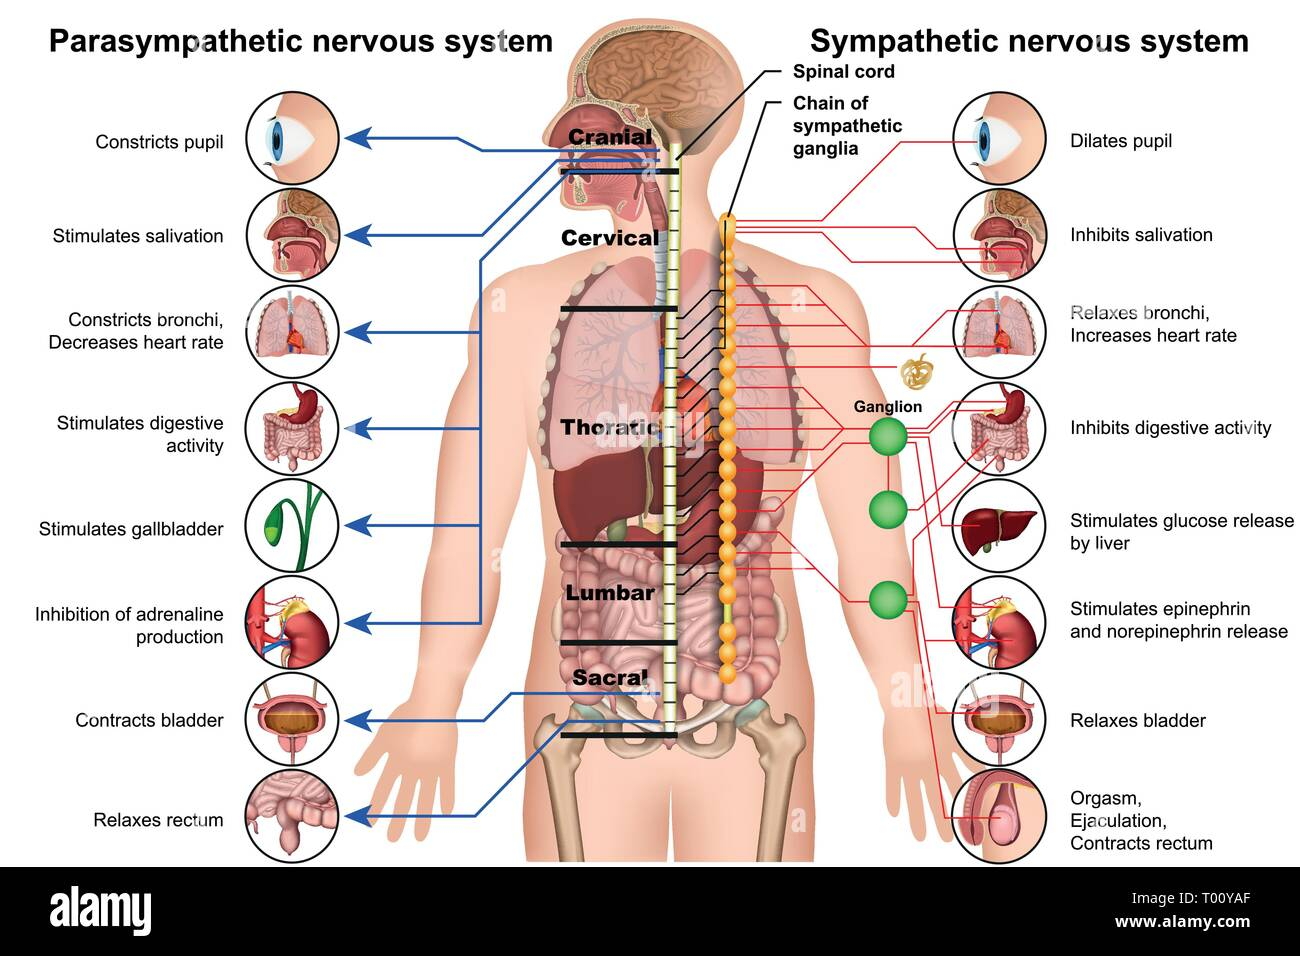 hight resolution of sympathetic and parasympathetic nervous system 3d medical vector illustration on white background stock image